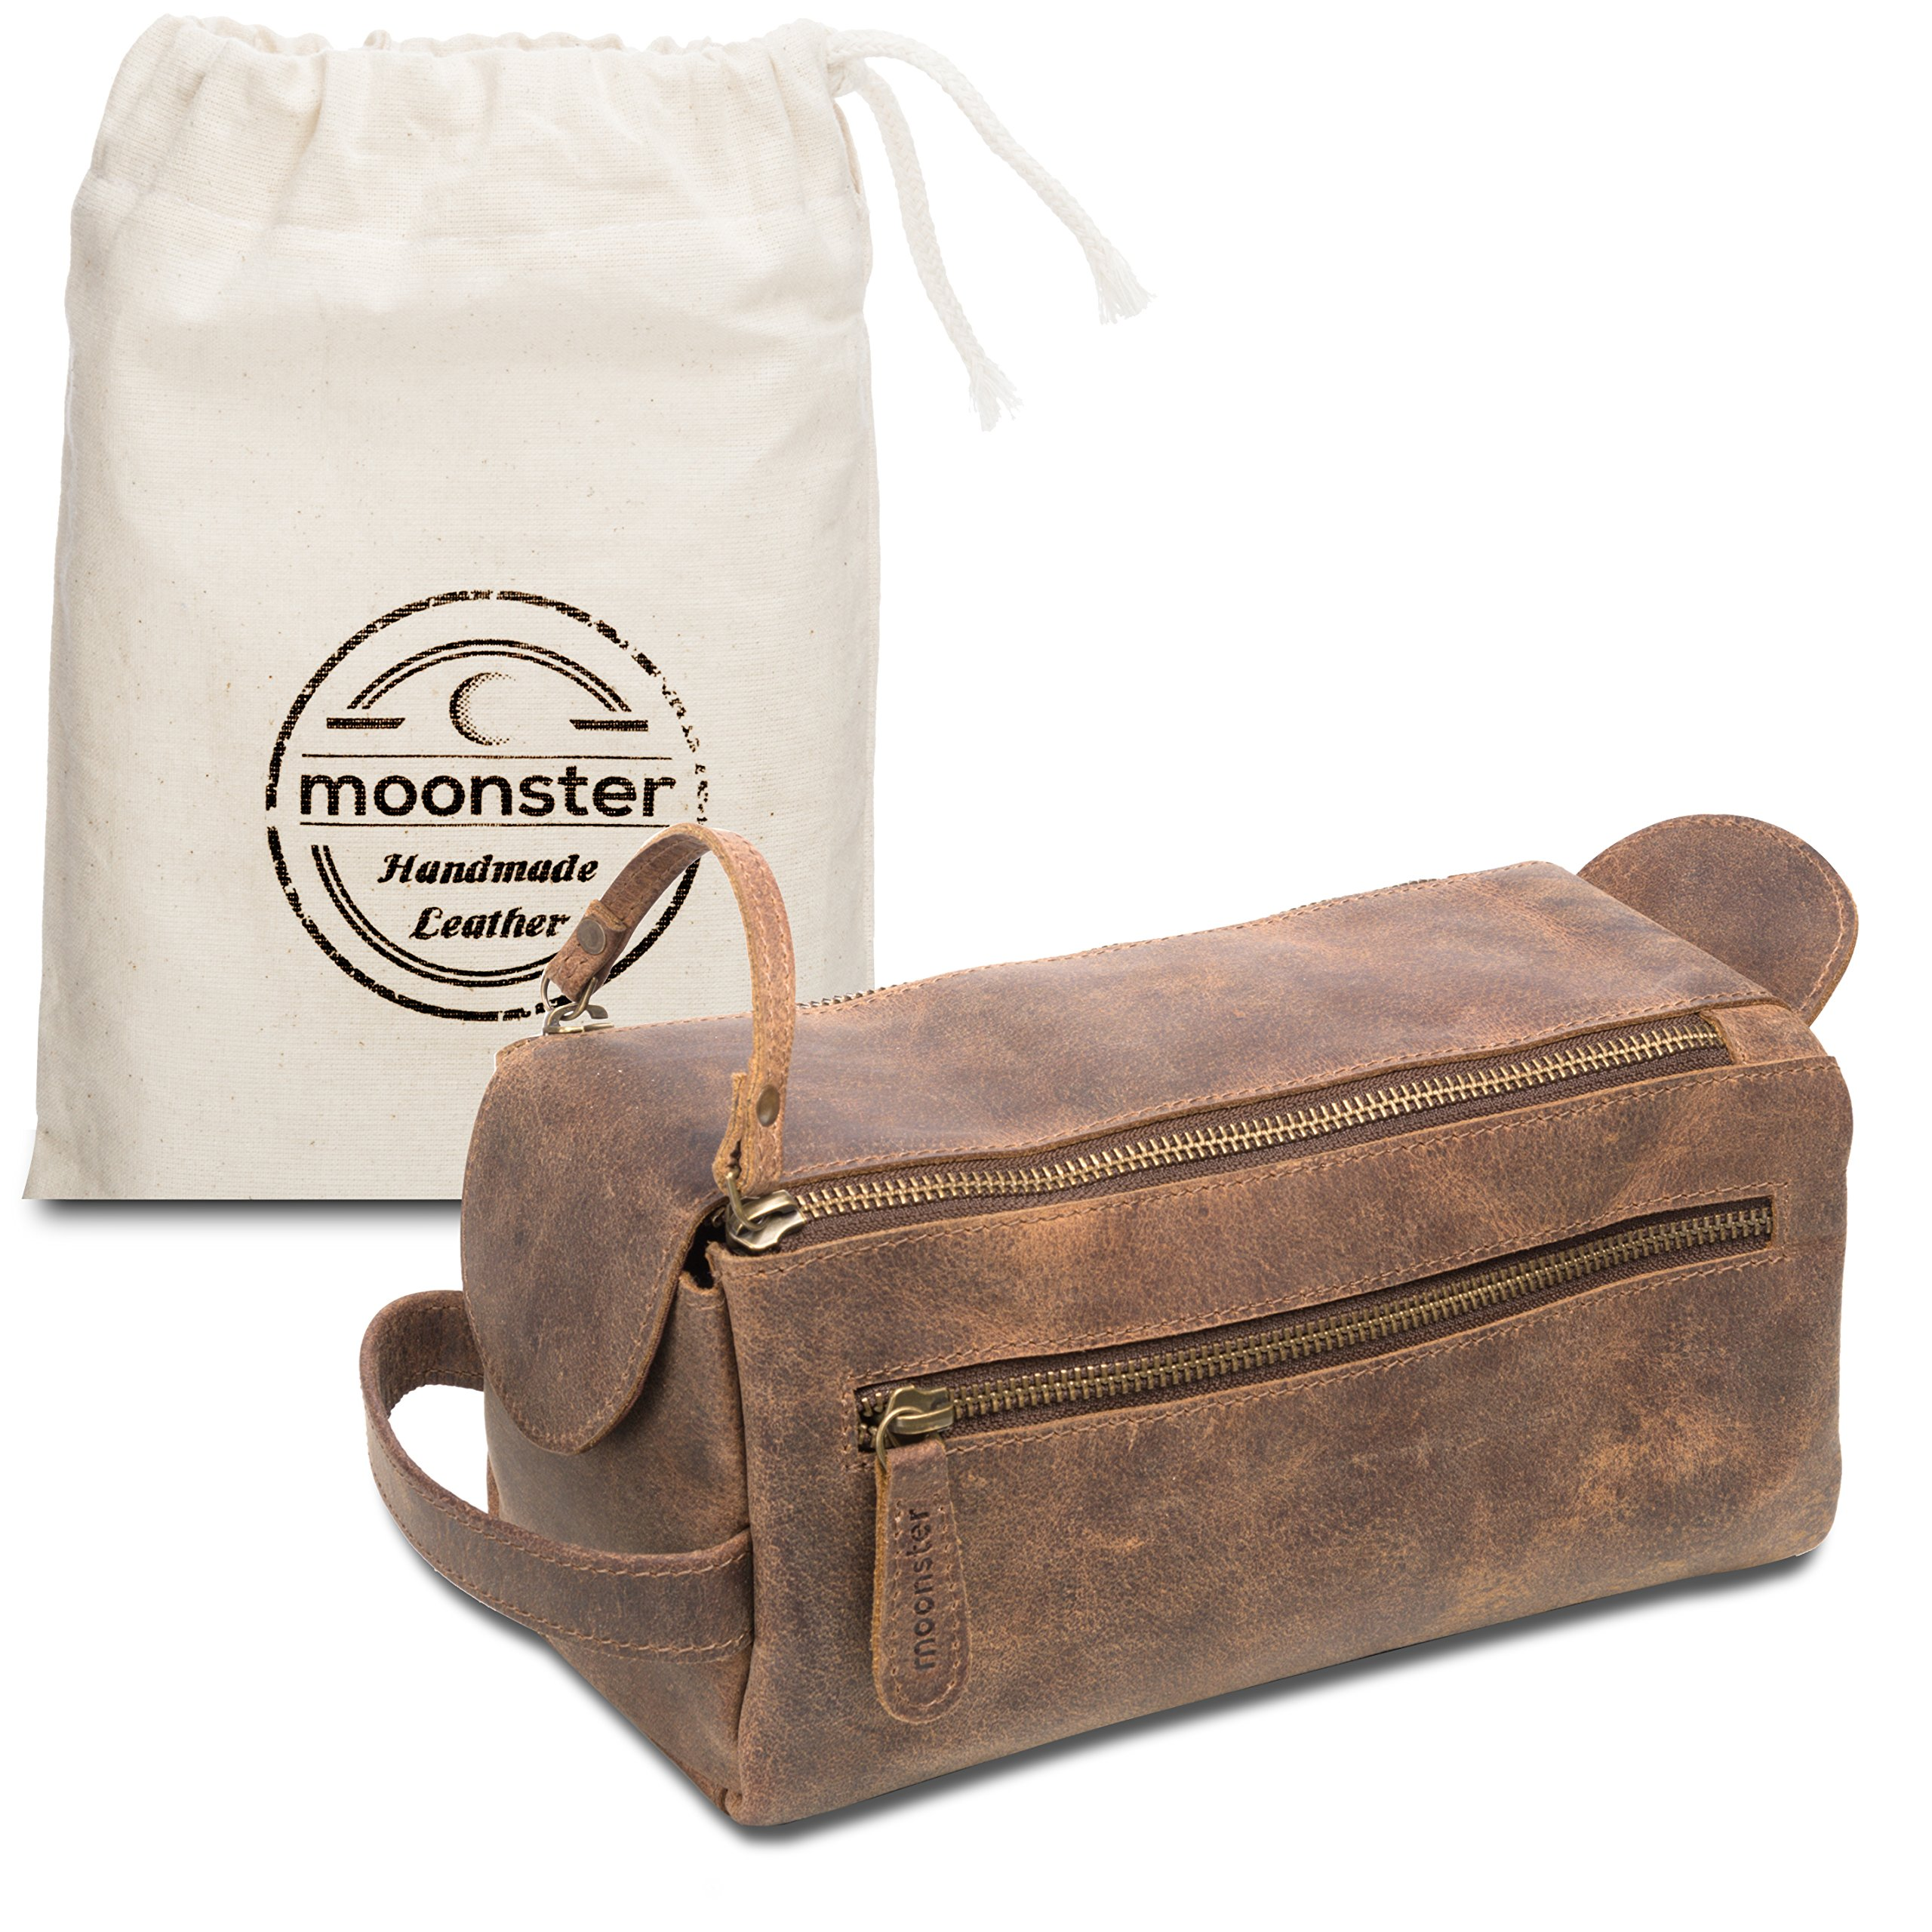 Leather Toiletry Bag For Men - Stylish, Practical and Thicker Than Other Bags - This Handmade Vintage Mens Dopp Kit is Compact, Sturdy and Water Resistant - Store All Your Travel Toiletries in Style